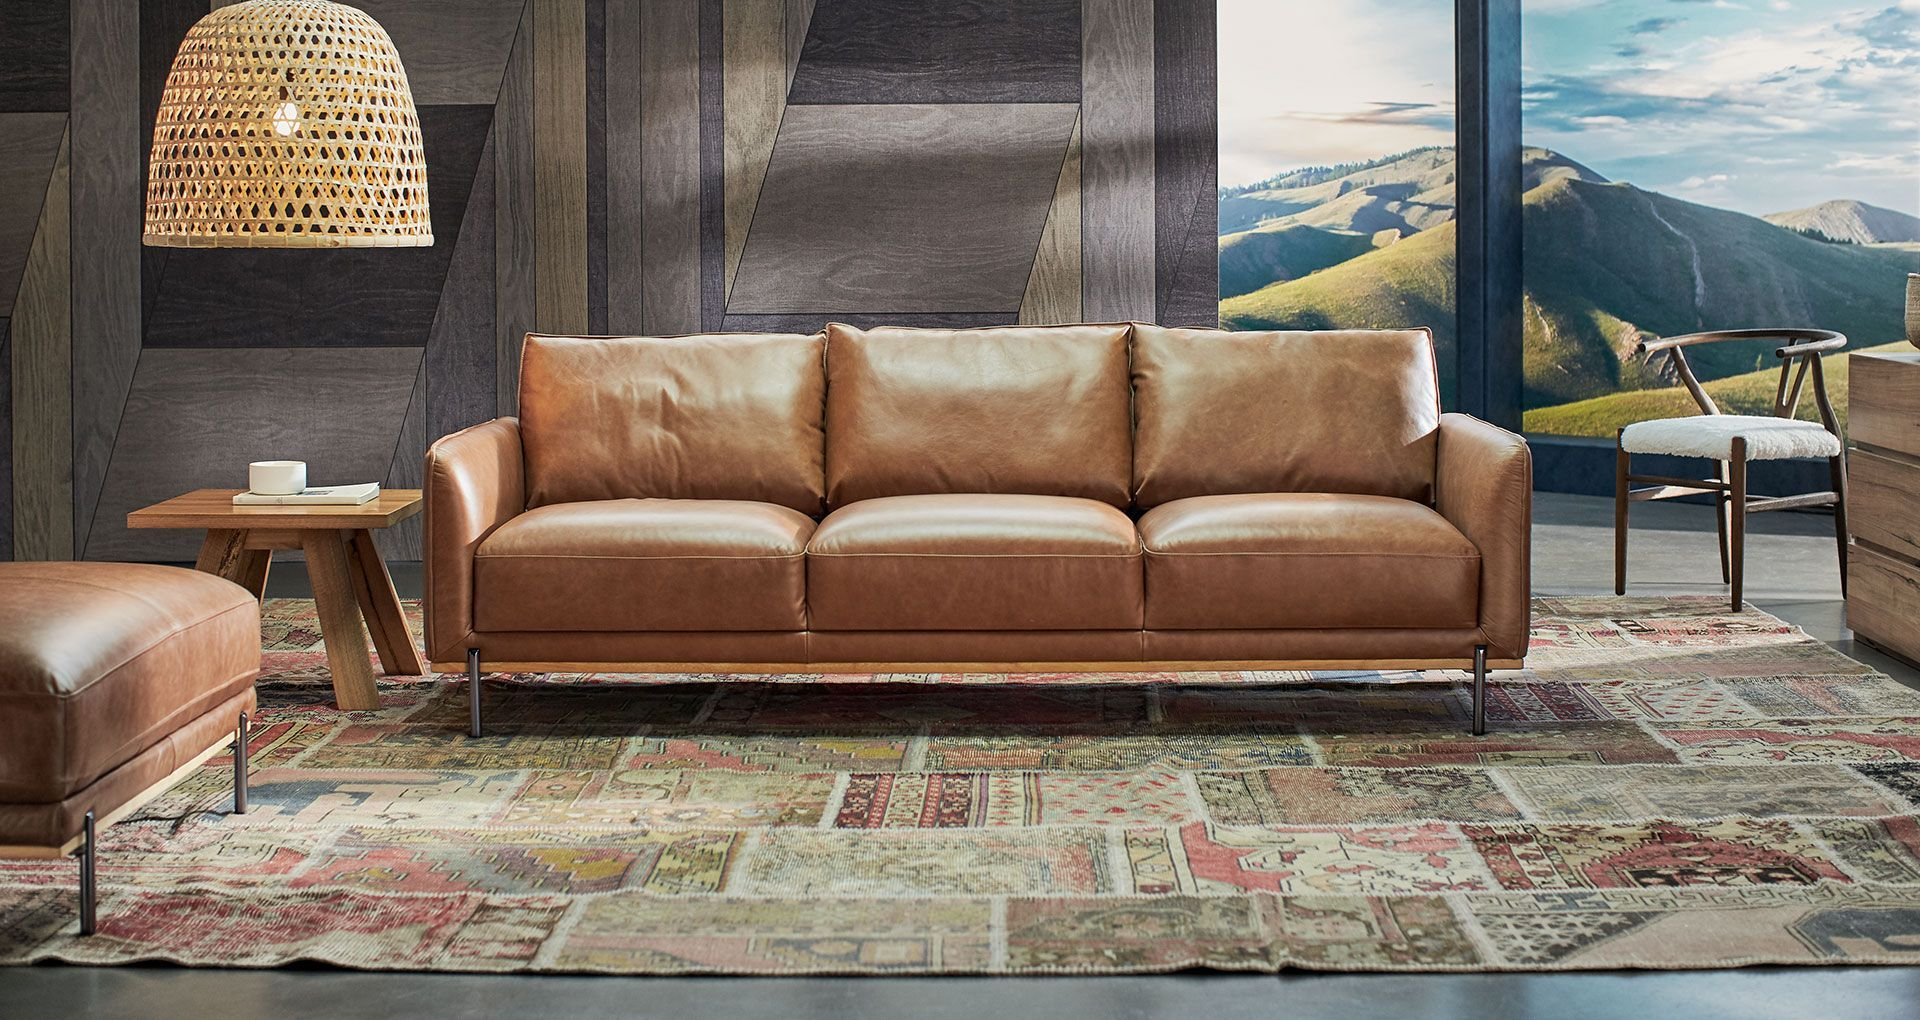 Shannon Nick Scali Furniture Nz Leather Lounge Upholstered Furniture